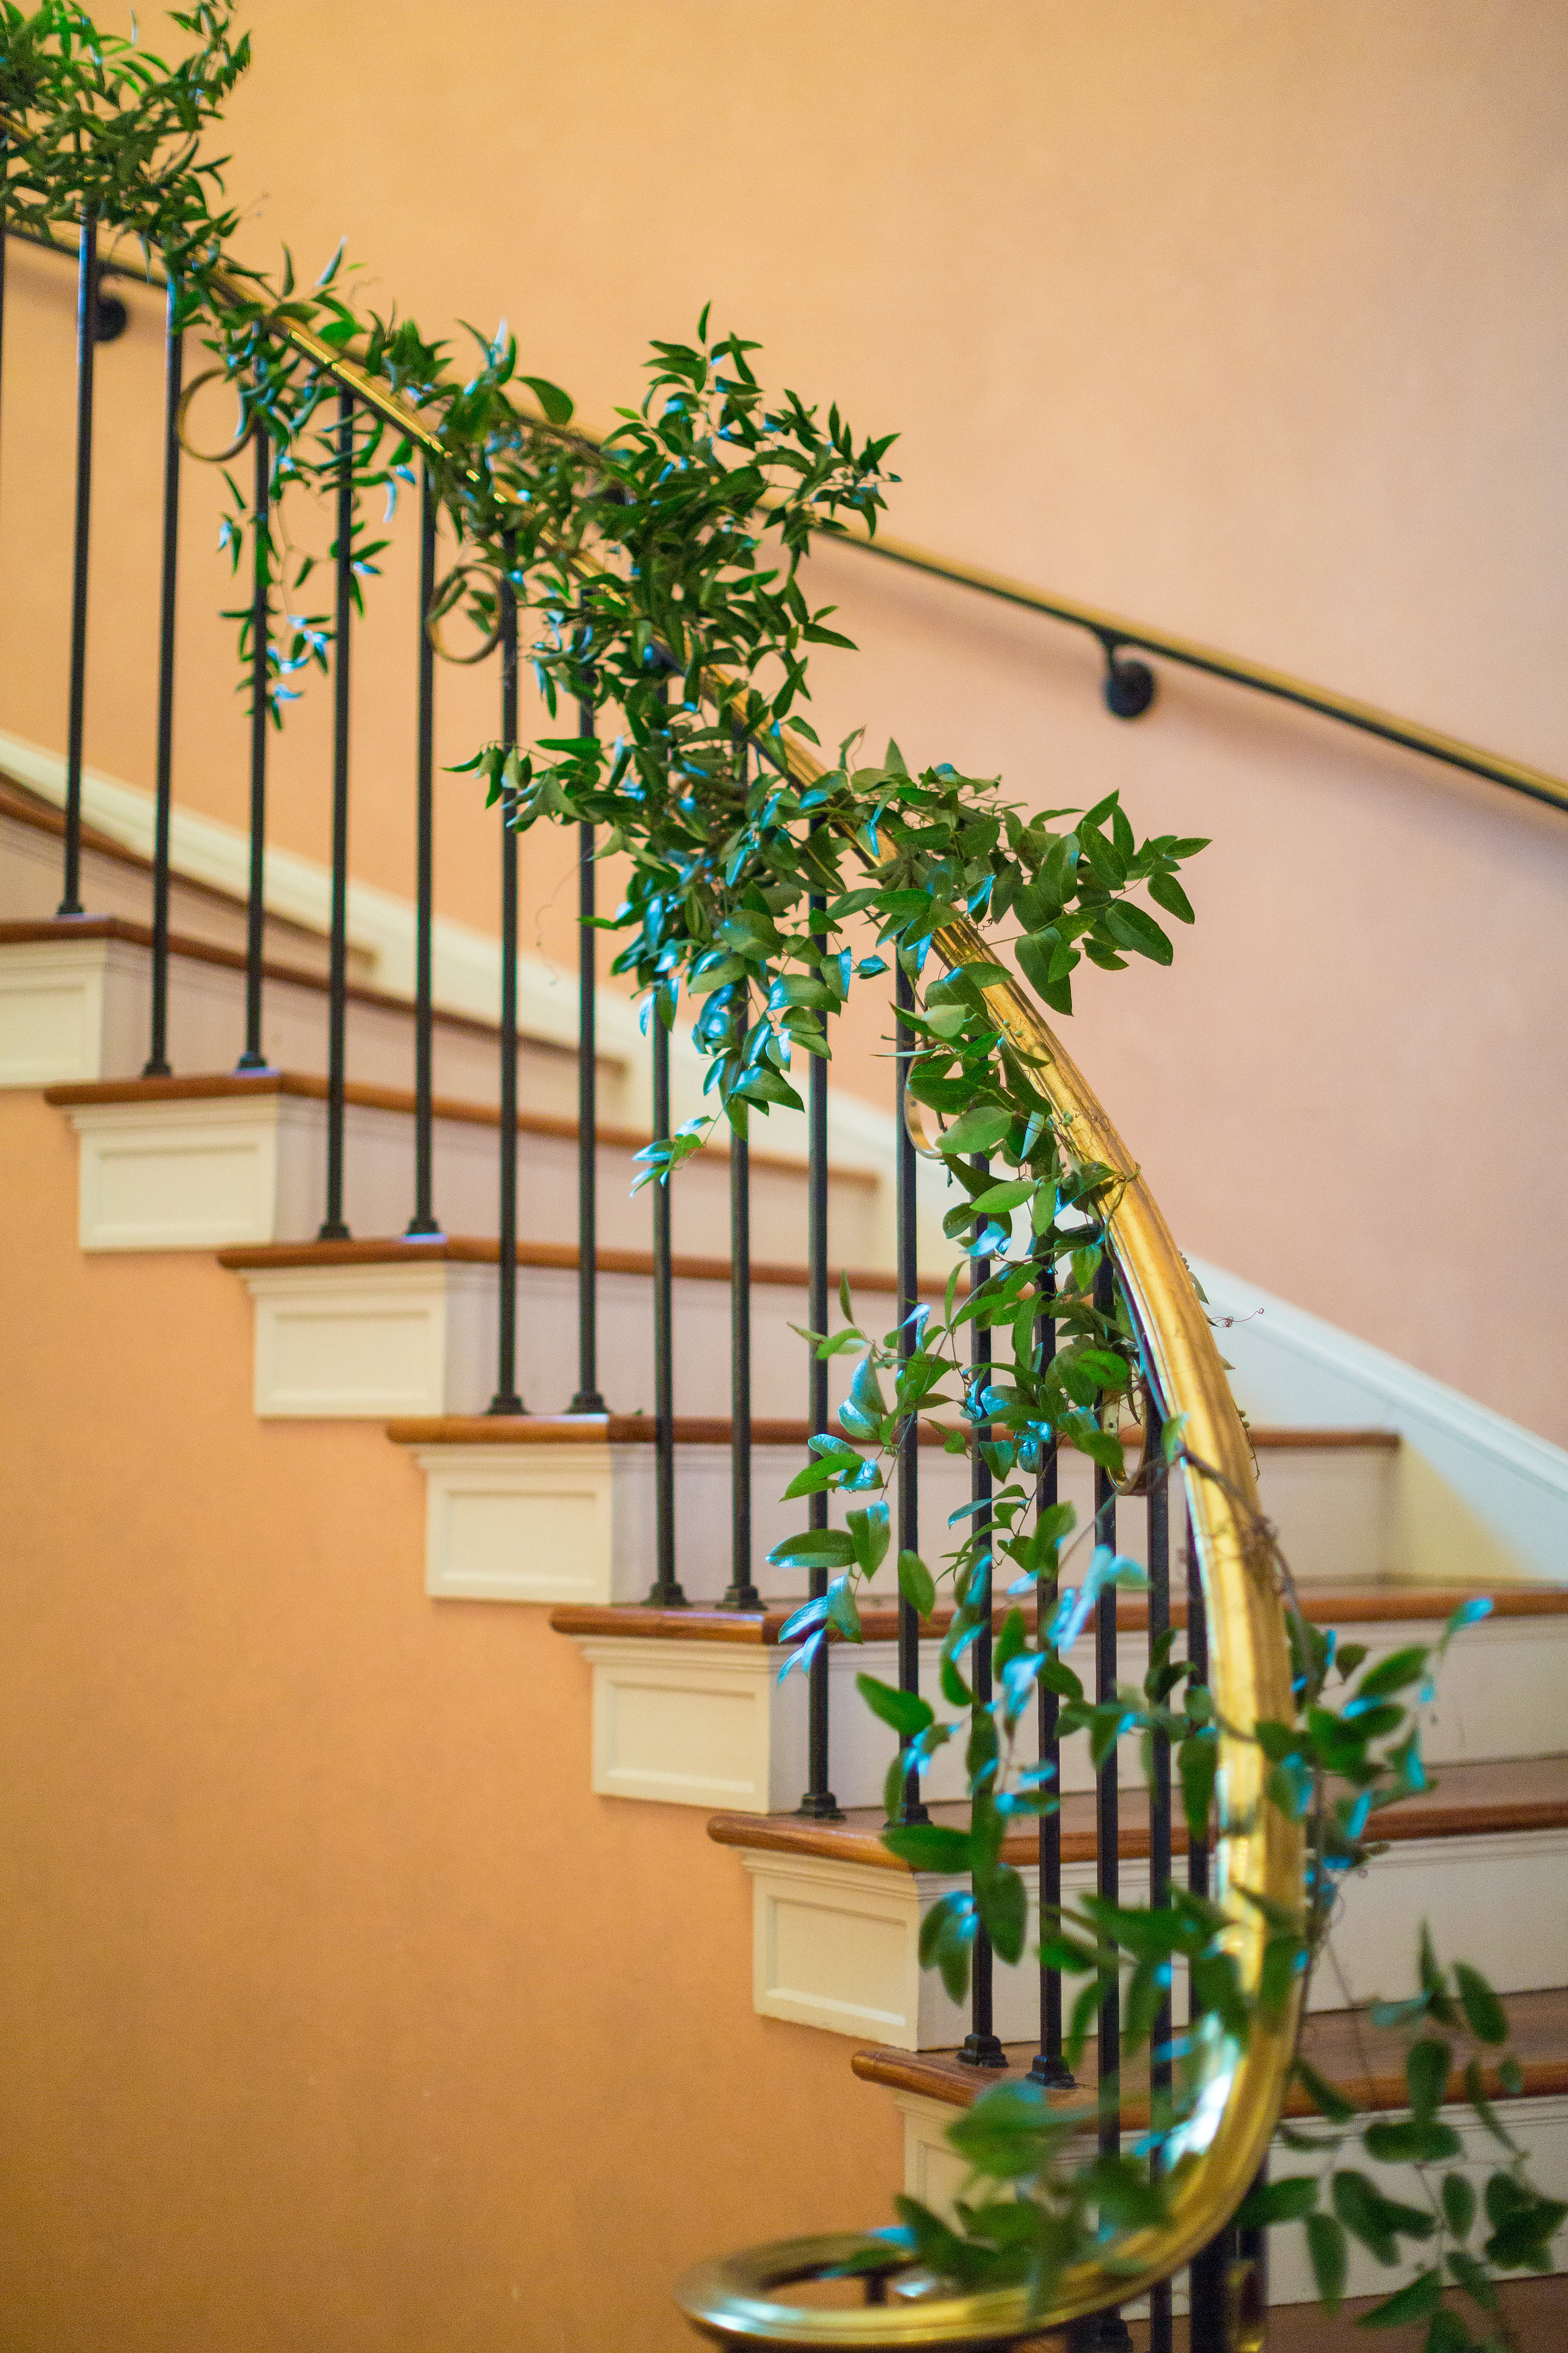 A garland of smilax wound its way down the curved banister of the staircase.  The way that Brantwyn was transformed honestly made it seem like the house itself was growing flowers.